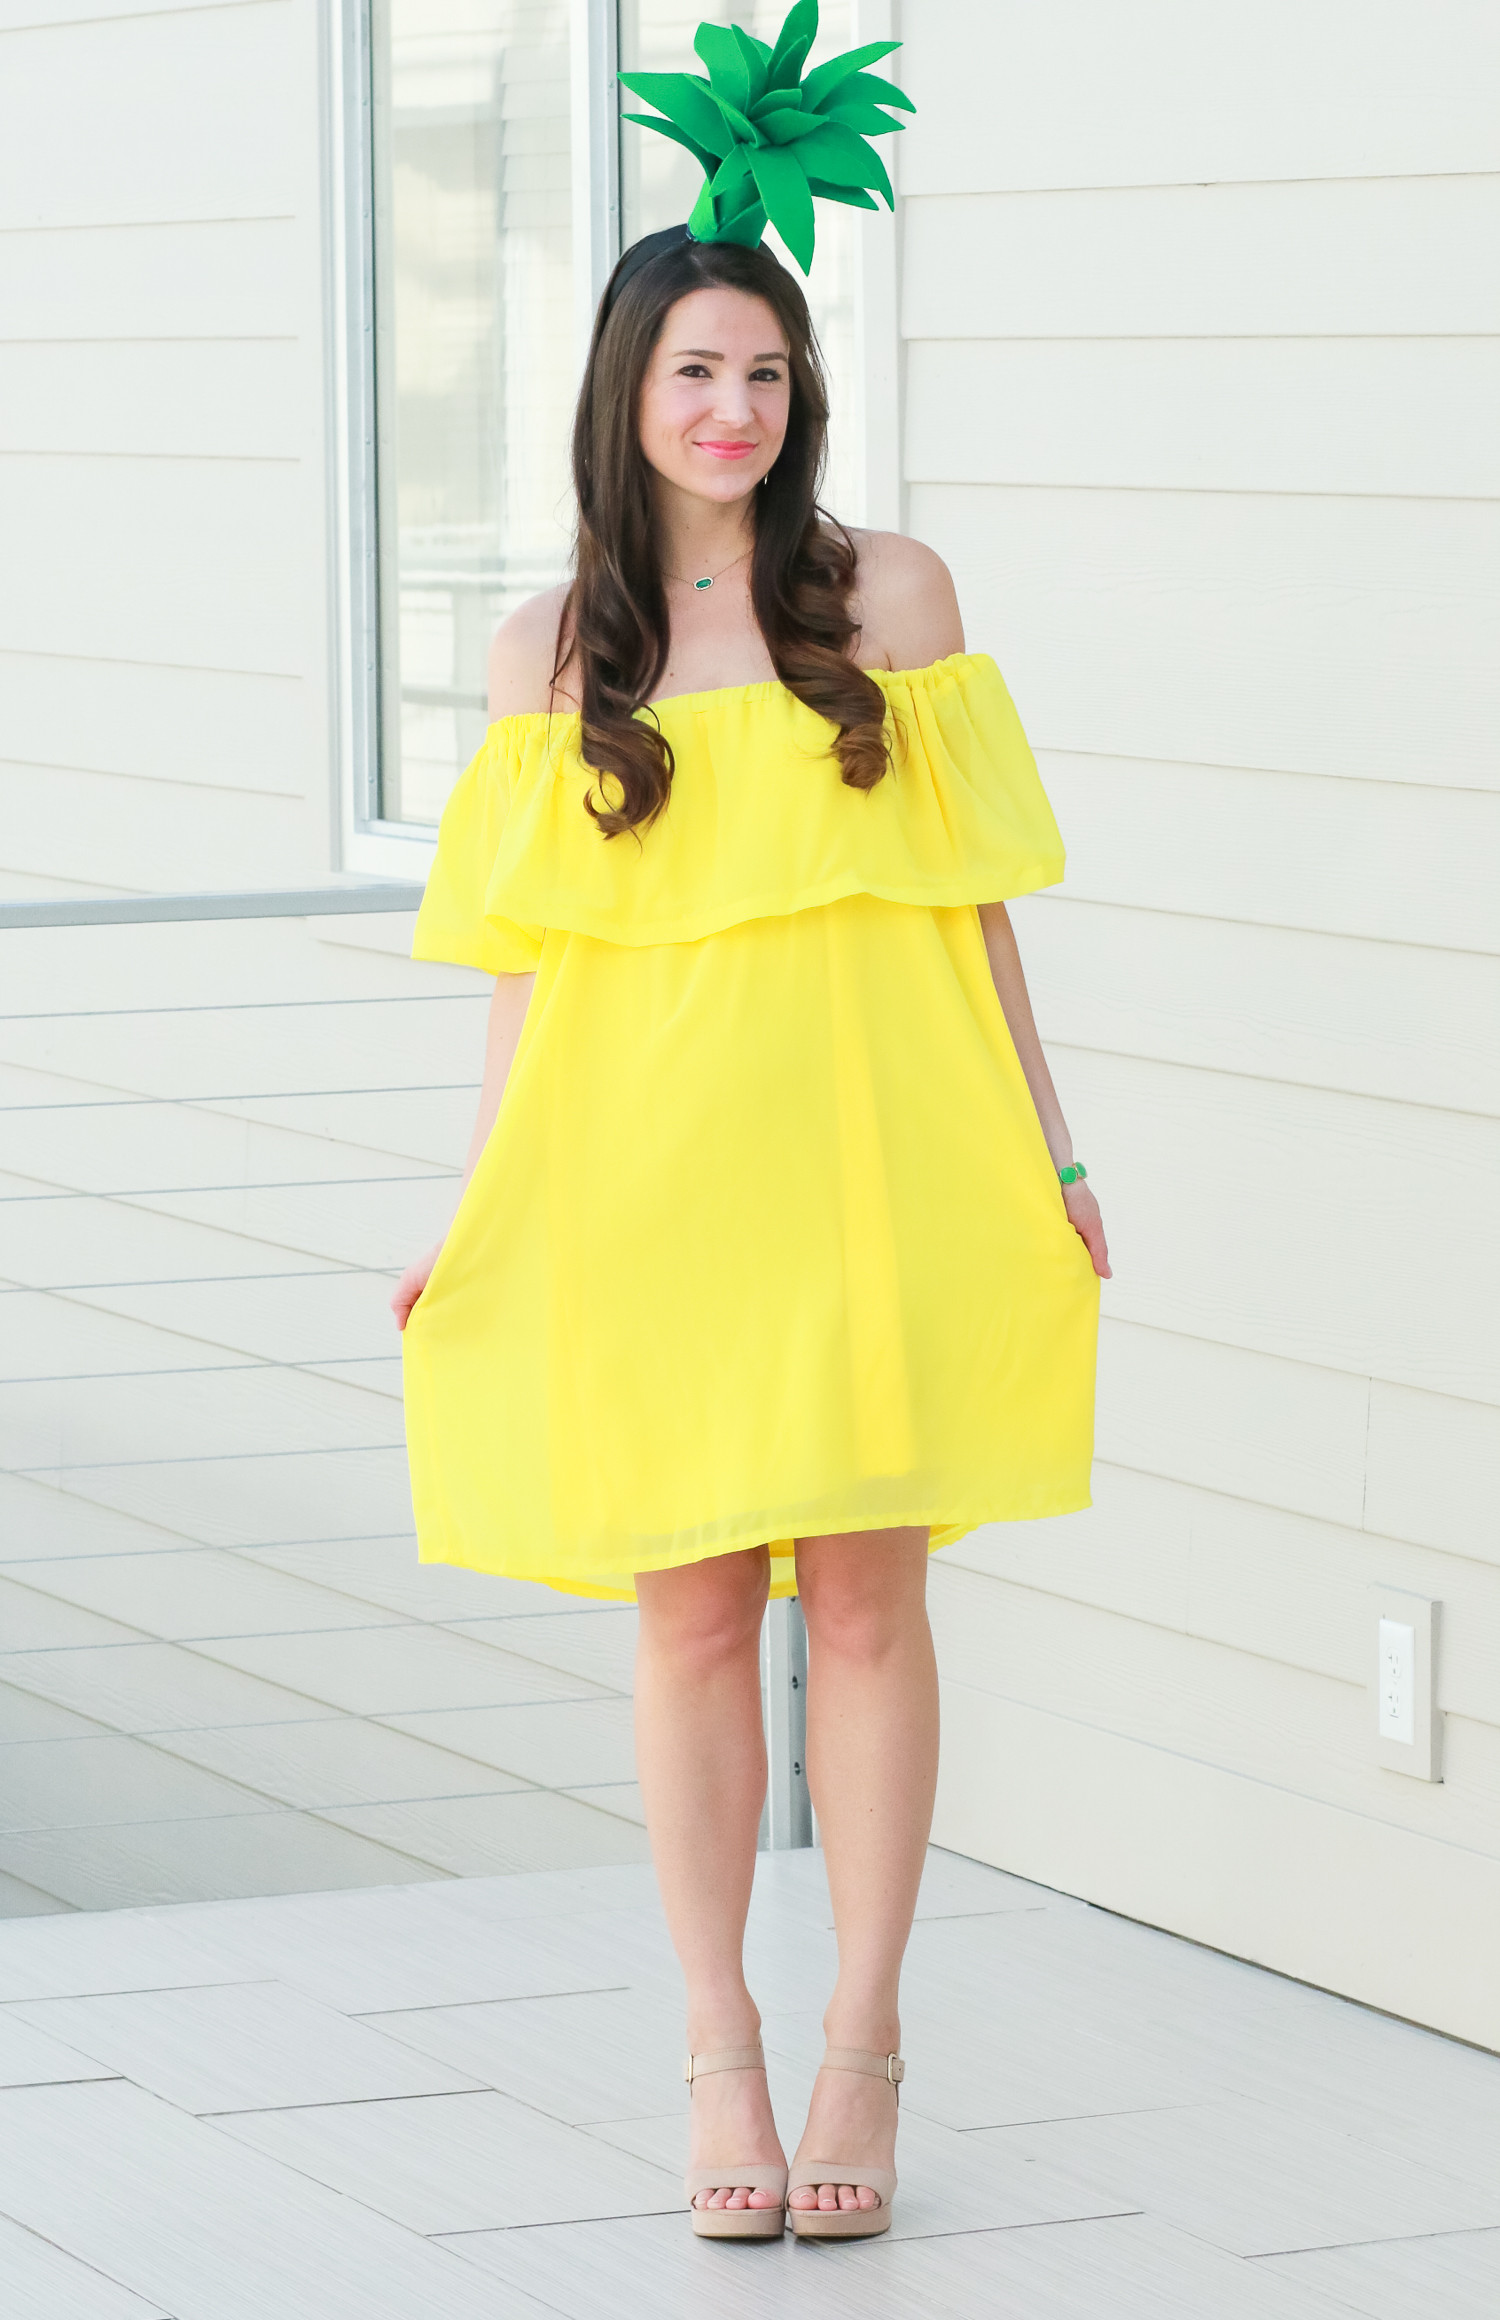 Easy DIY Halloween Costumes For Adults  DIY Pineapple Costume That Costs Less Than $3 to Make